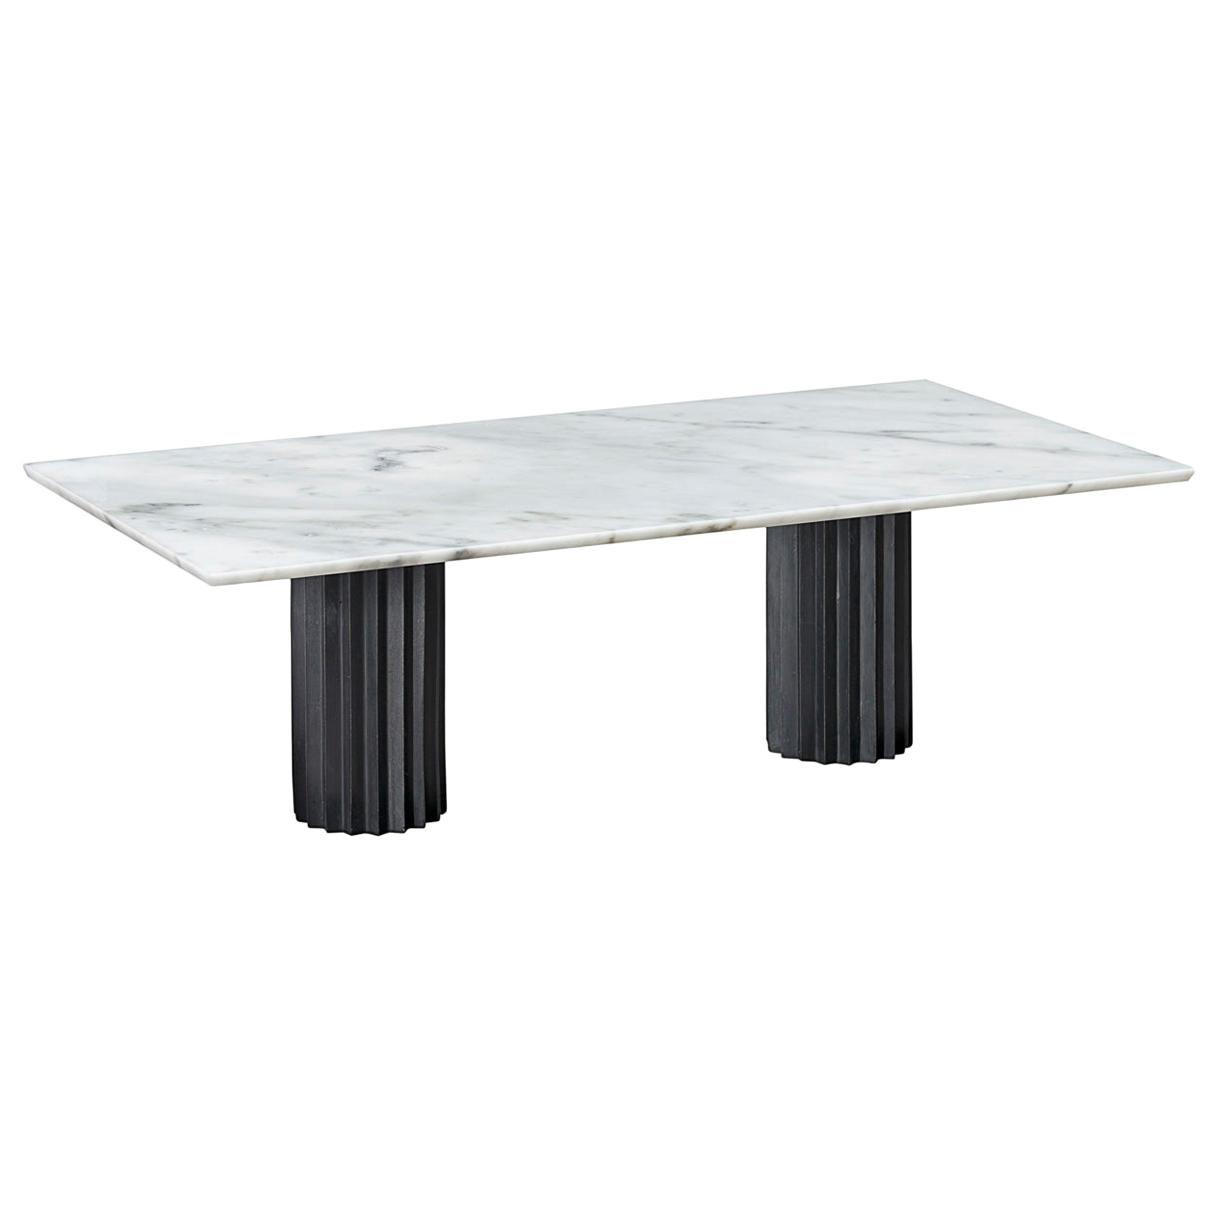 Doris Double Pedestal Dining Table in White Carrara Marble and Blackened Bronze